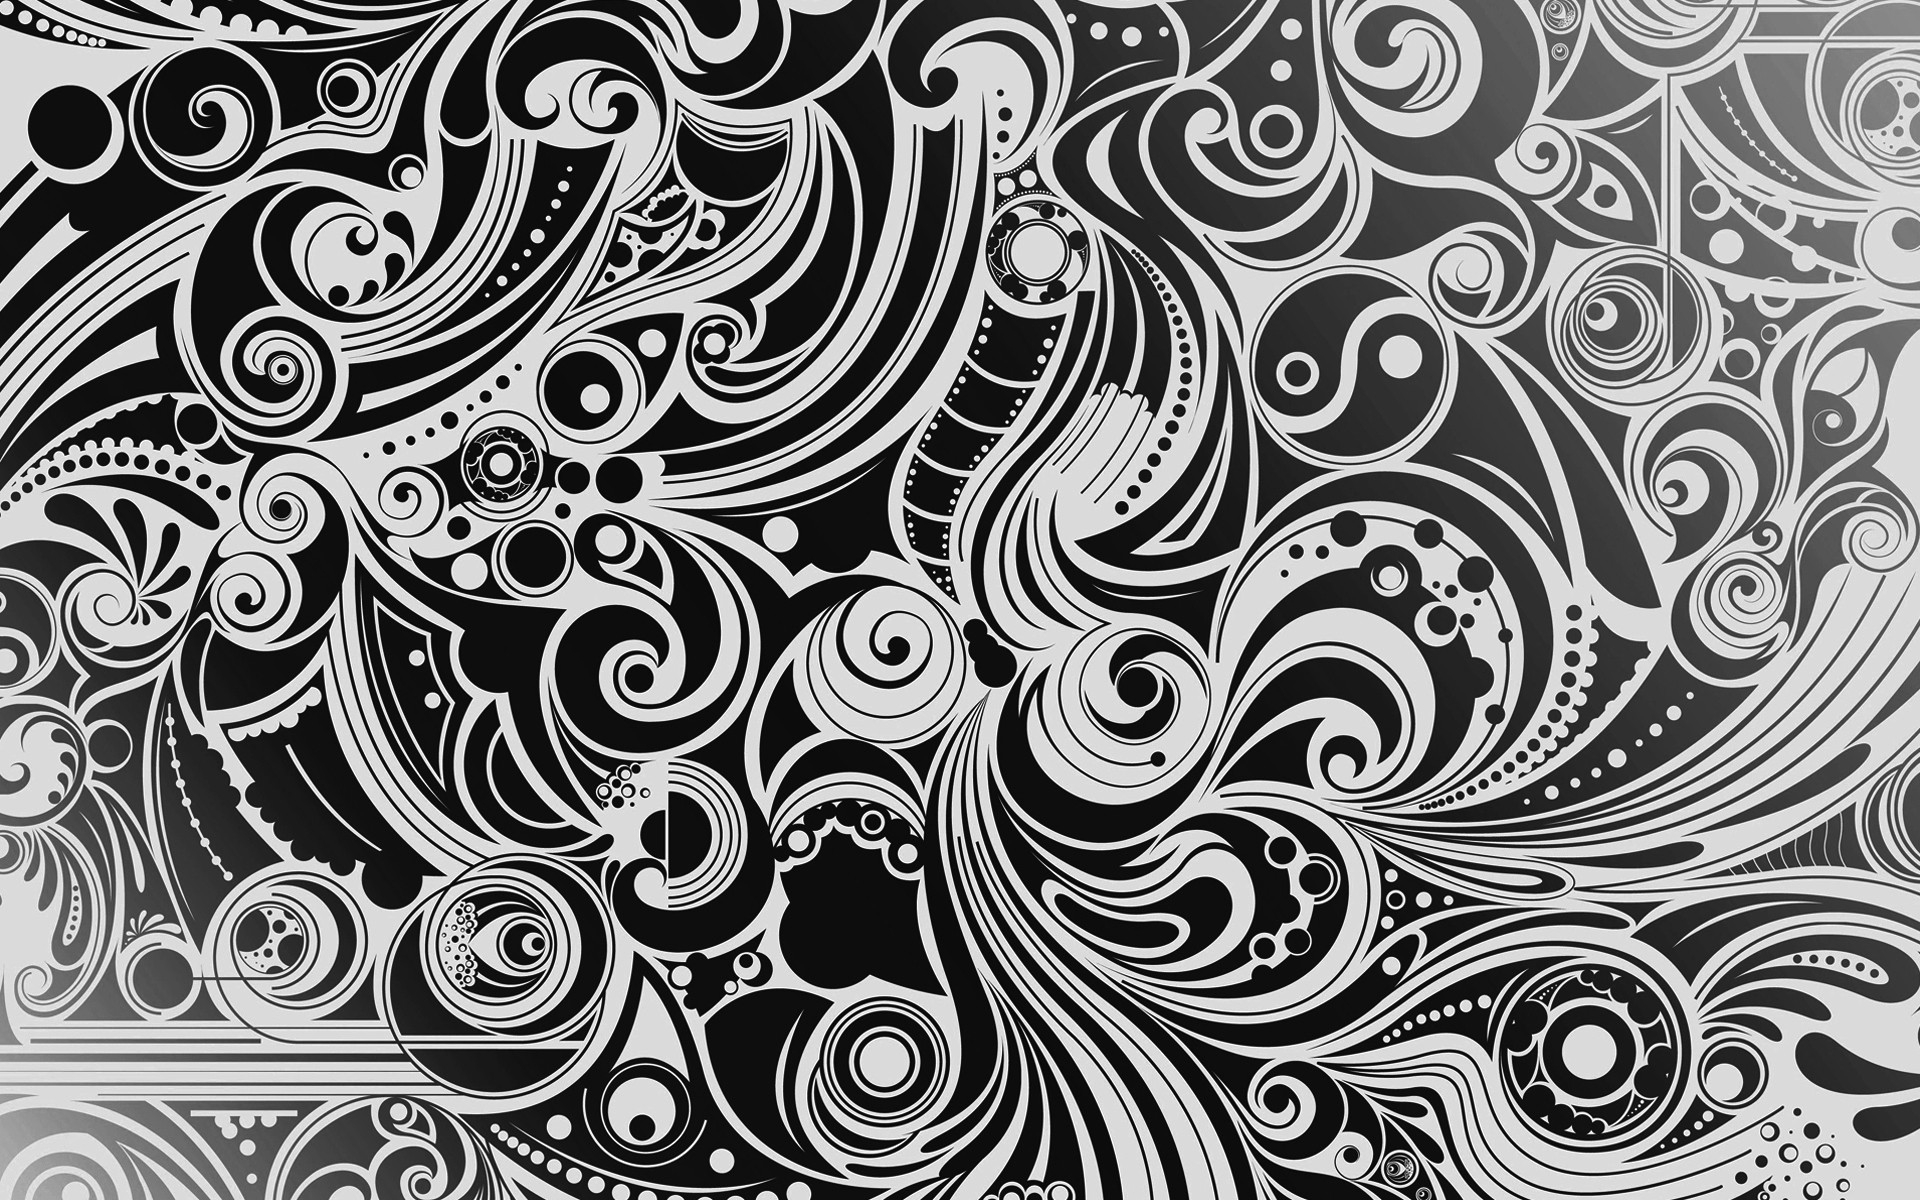 Black And White Patterned Wallpaper